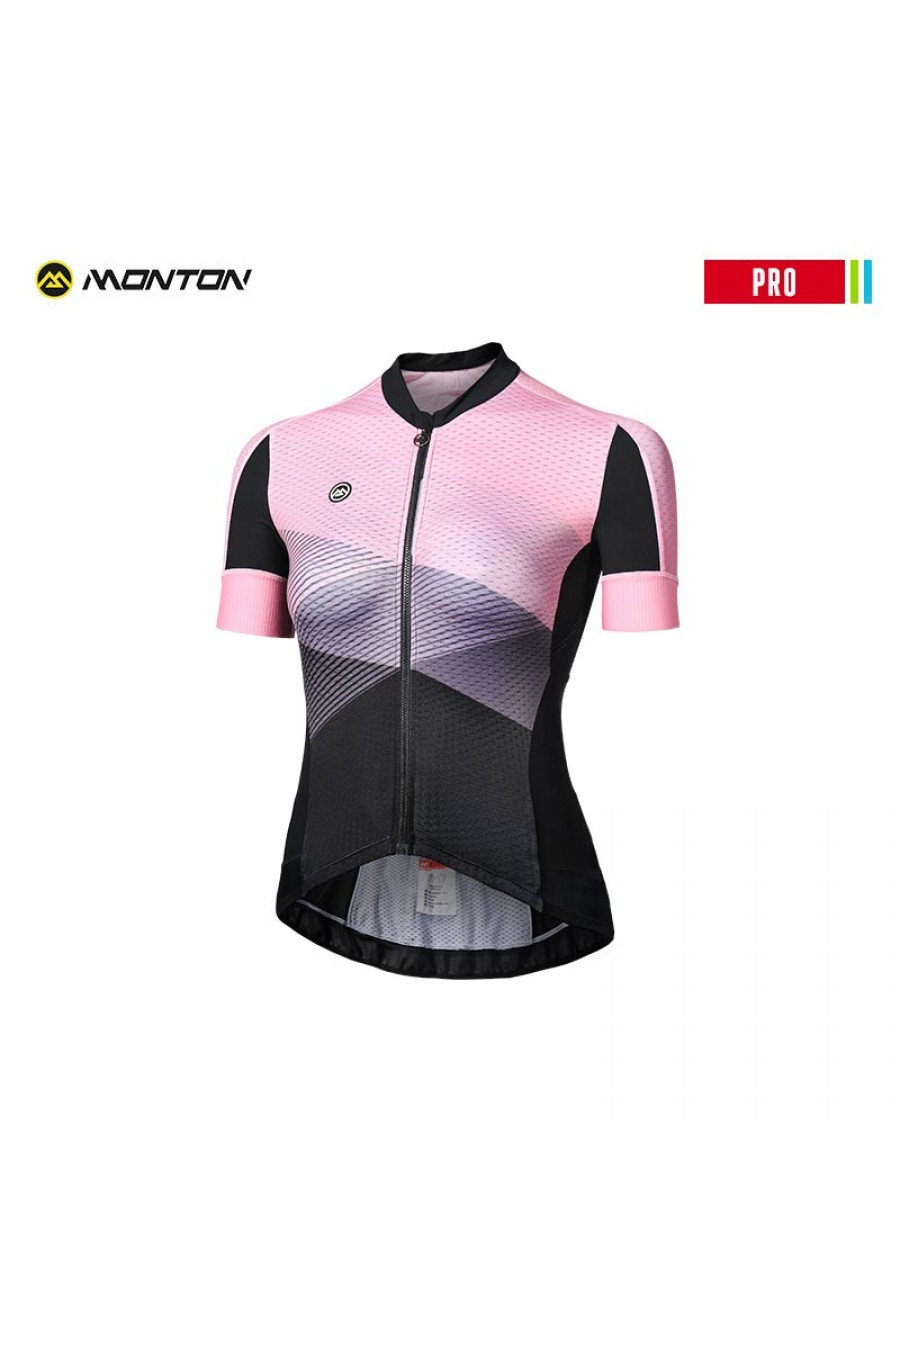 fb7681f36c6 Buy 2018 Summer Cycle Jersey Womens PRO Fit Online